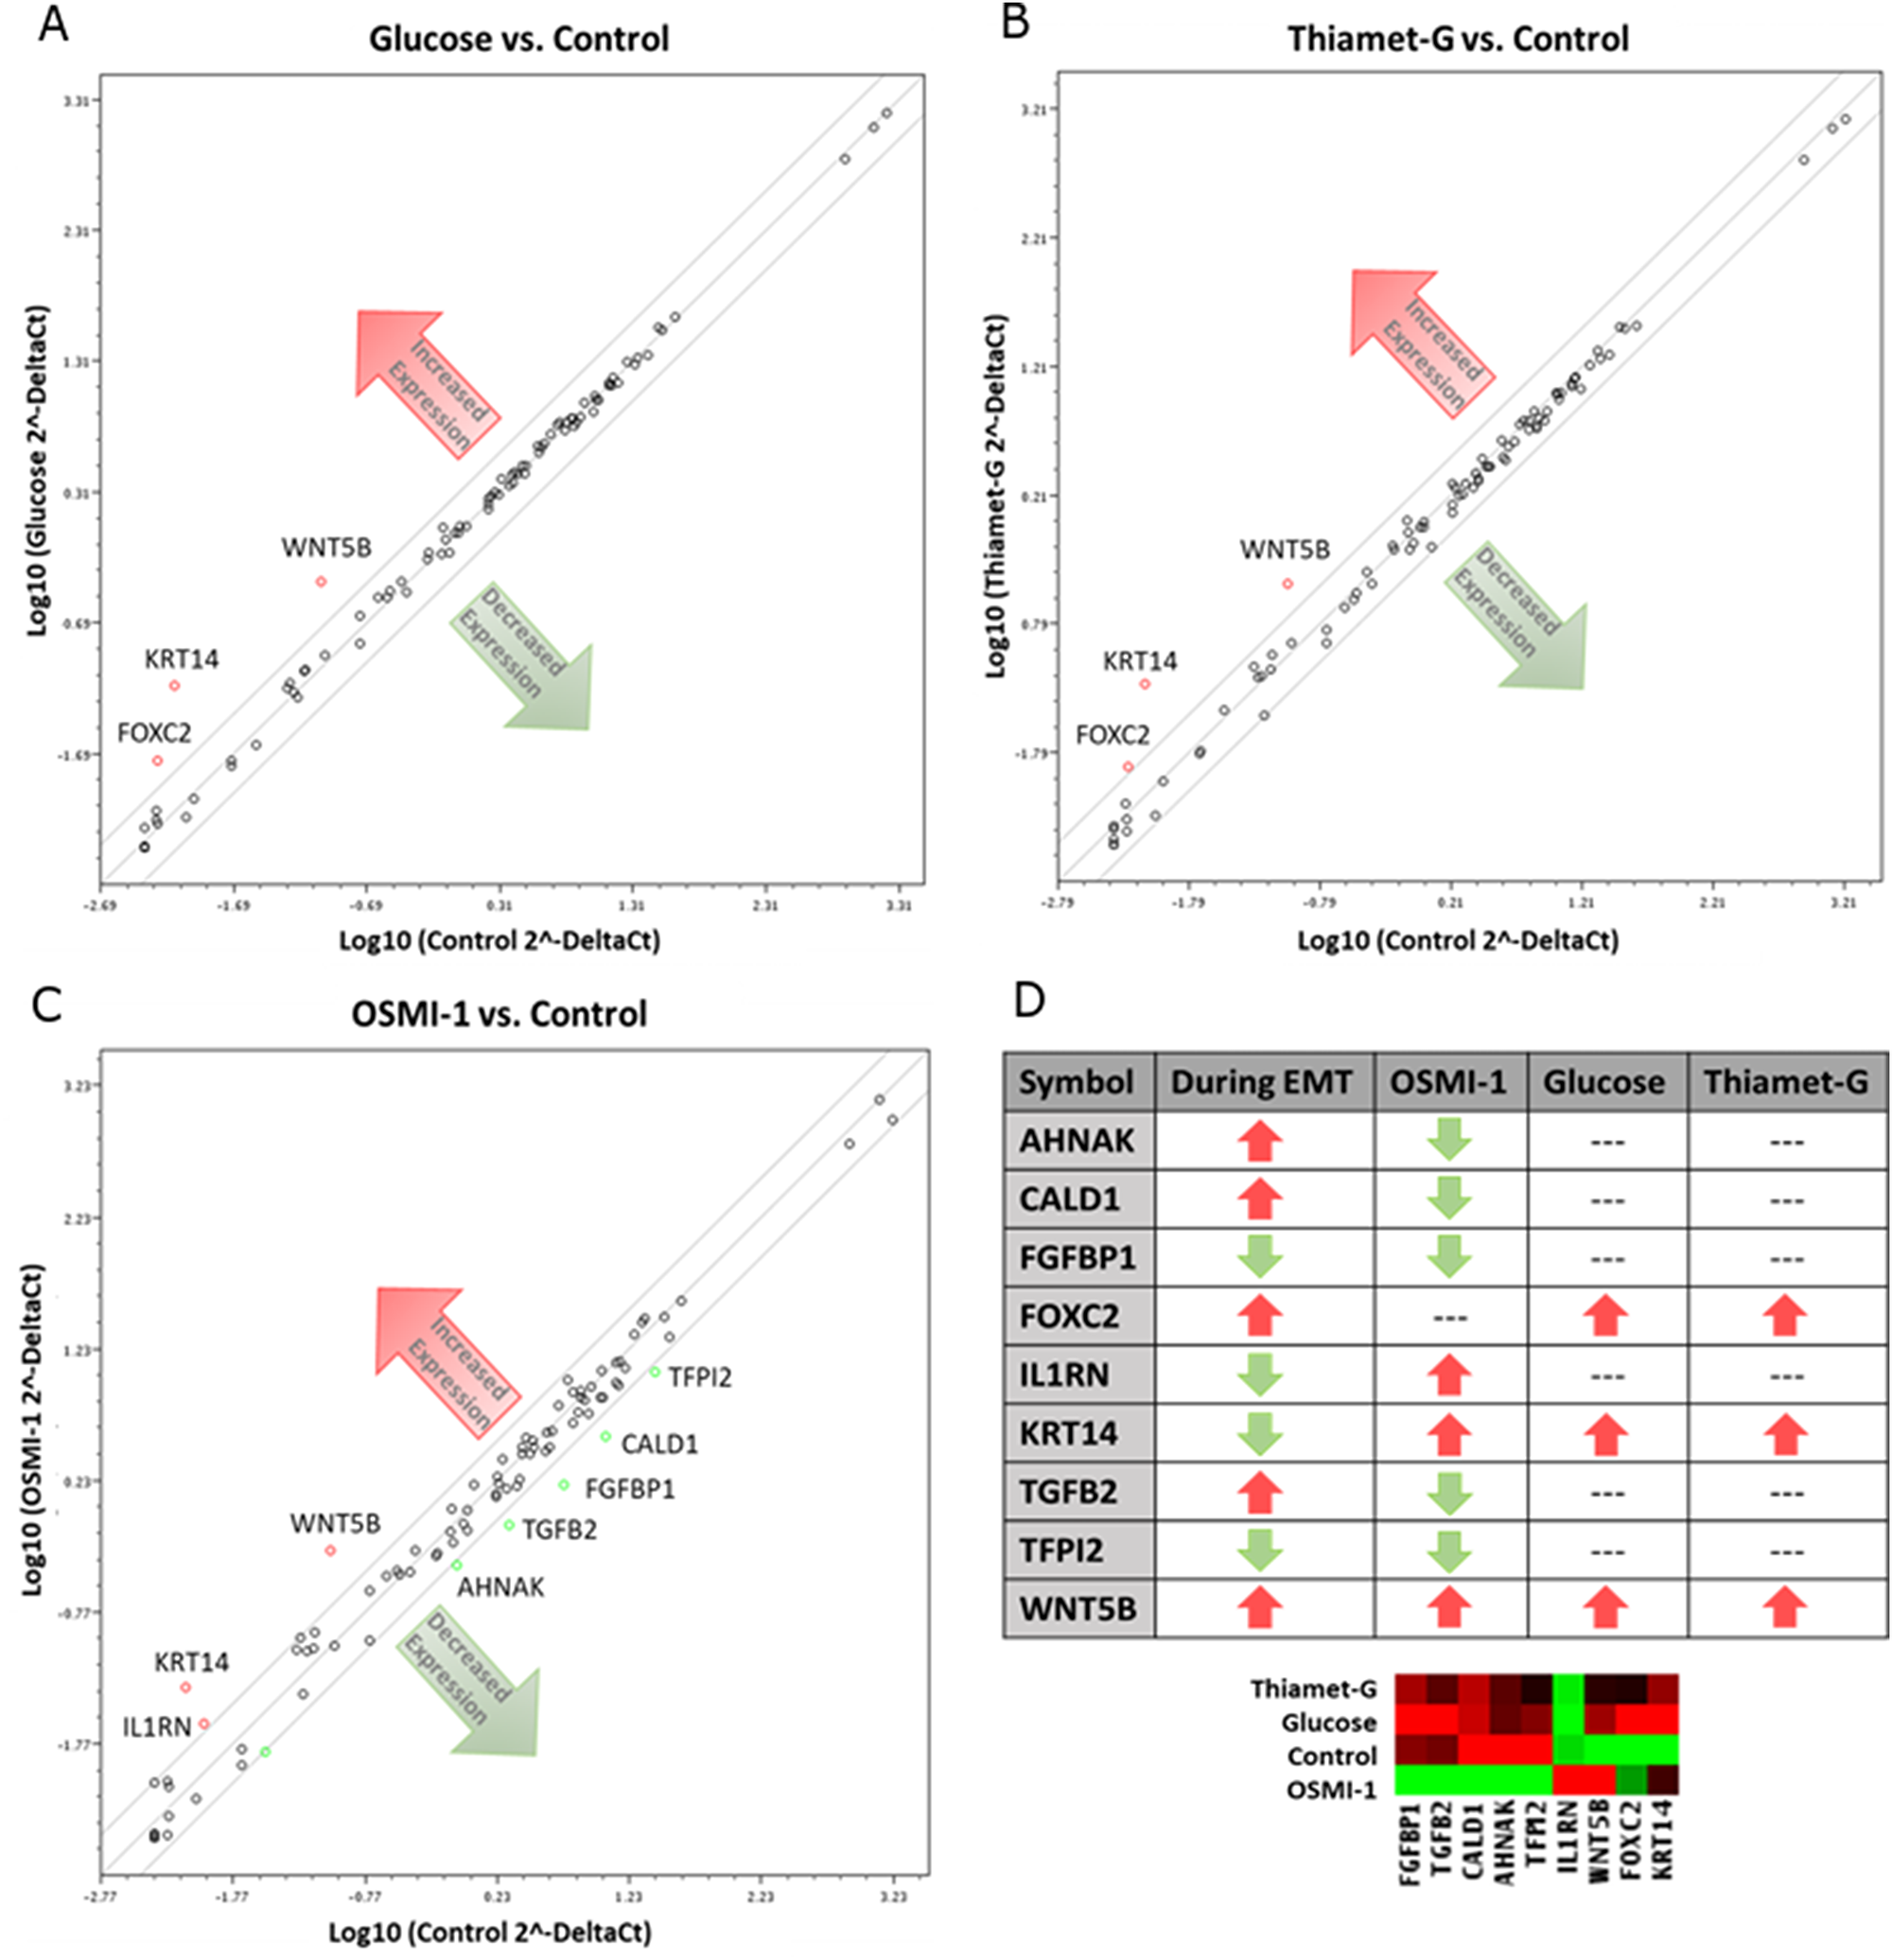 Disruption of O-GlcNAc alters gene expression in EMT related genes of Ishikawa cells.